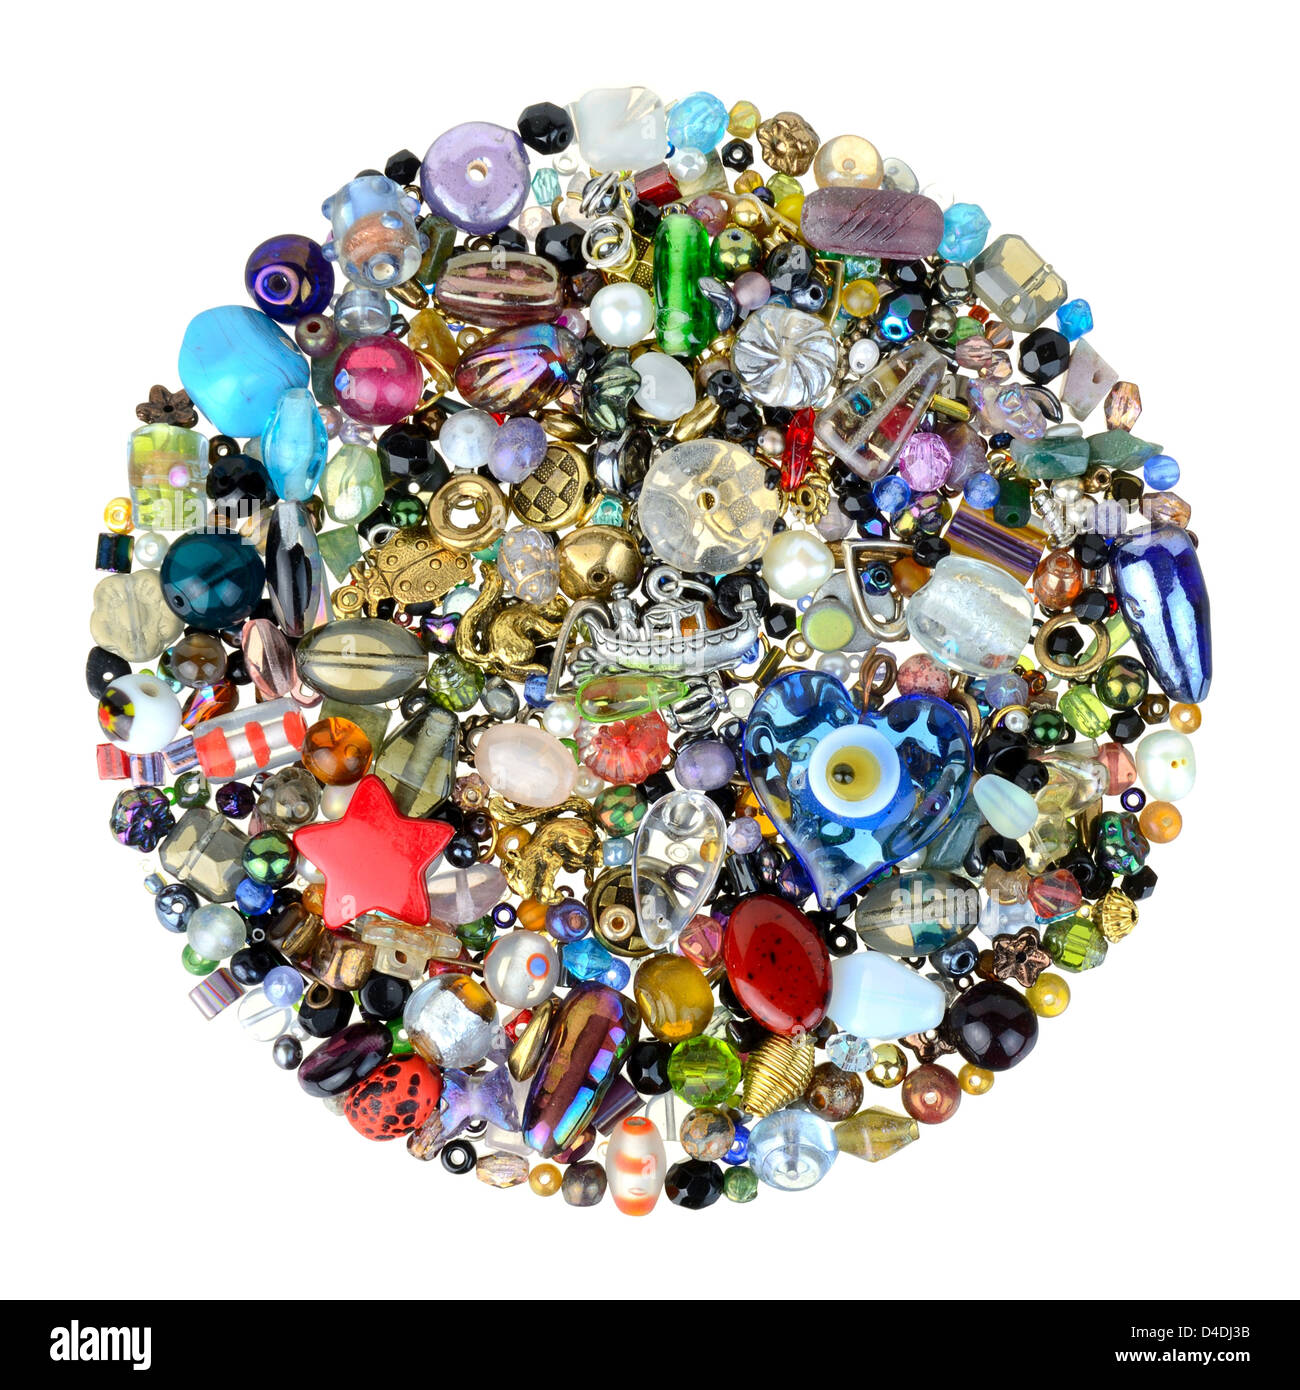 glass beads and charms for jewelry making - Stock Image